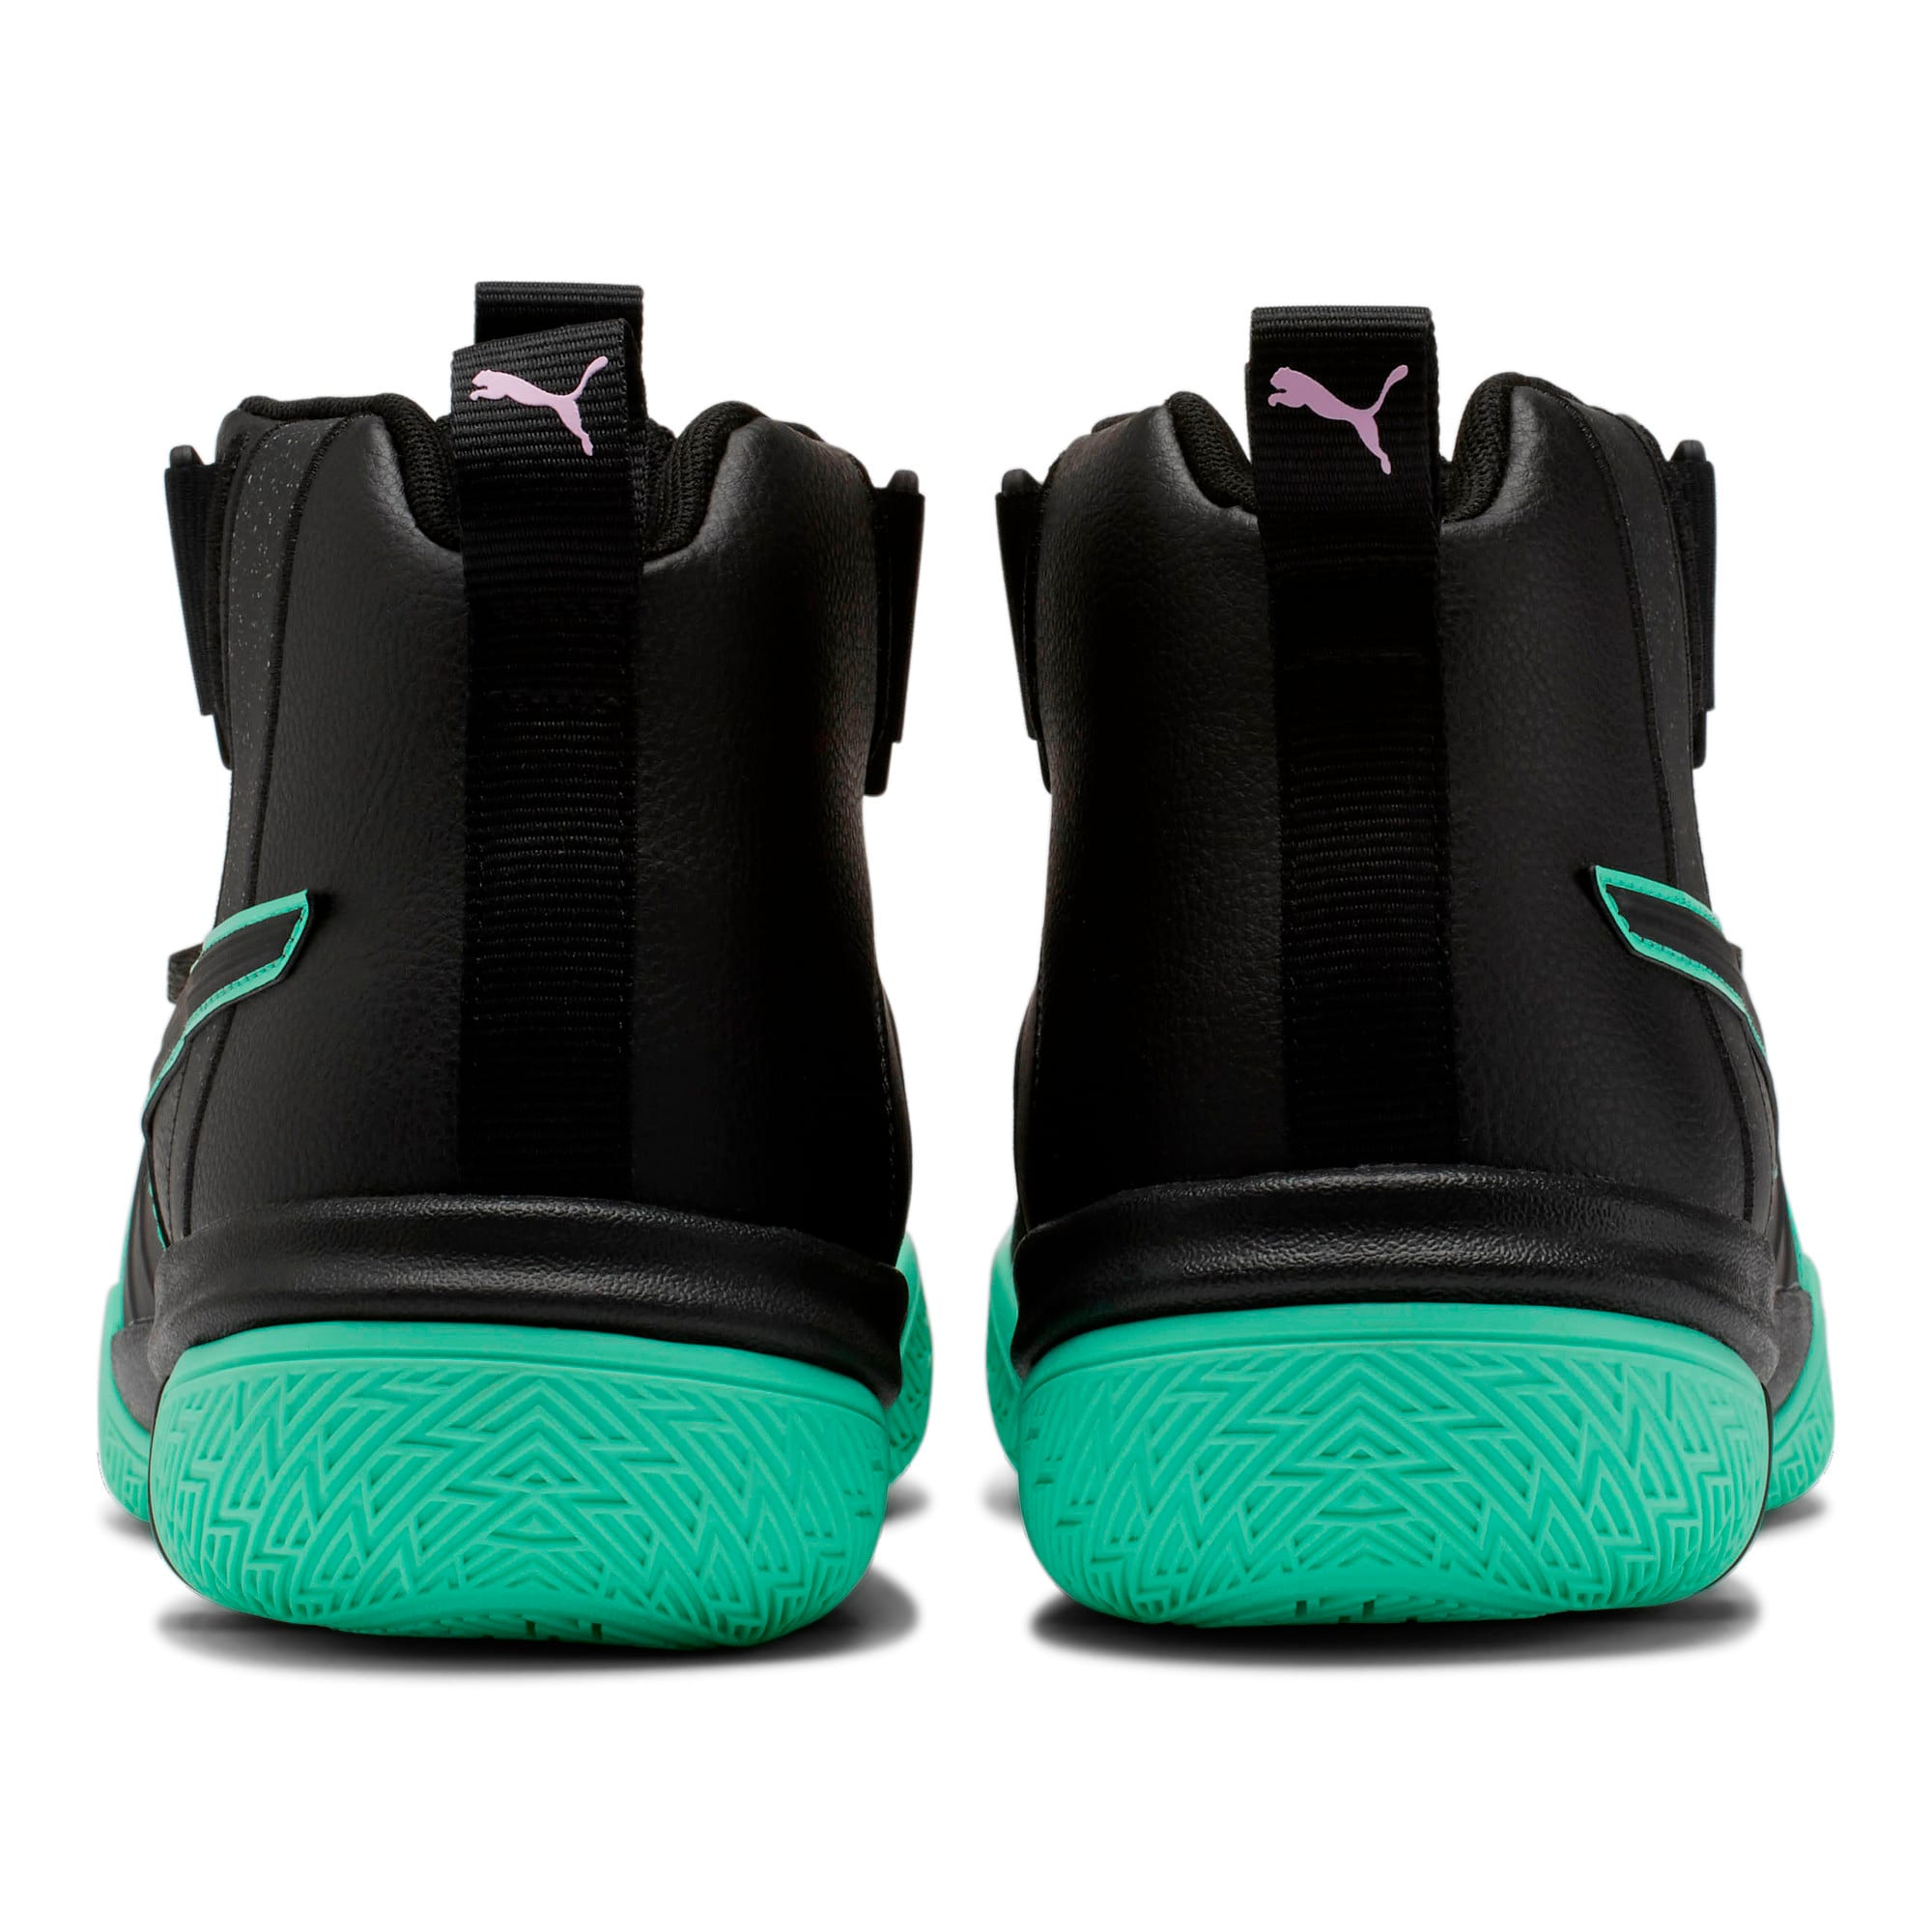 Thumbnail 3 of Legacy Dark Mode Basketball Shoes, Puma Black-Orchid Bloom, medium